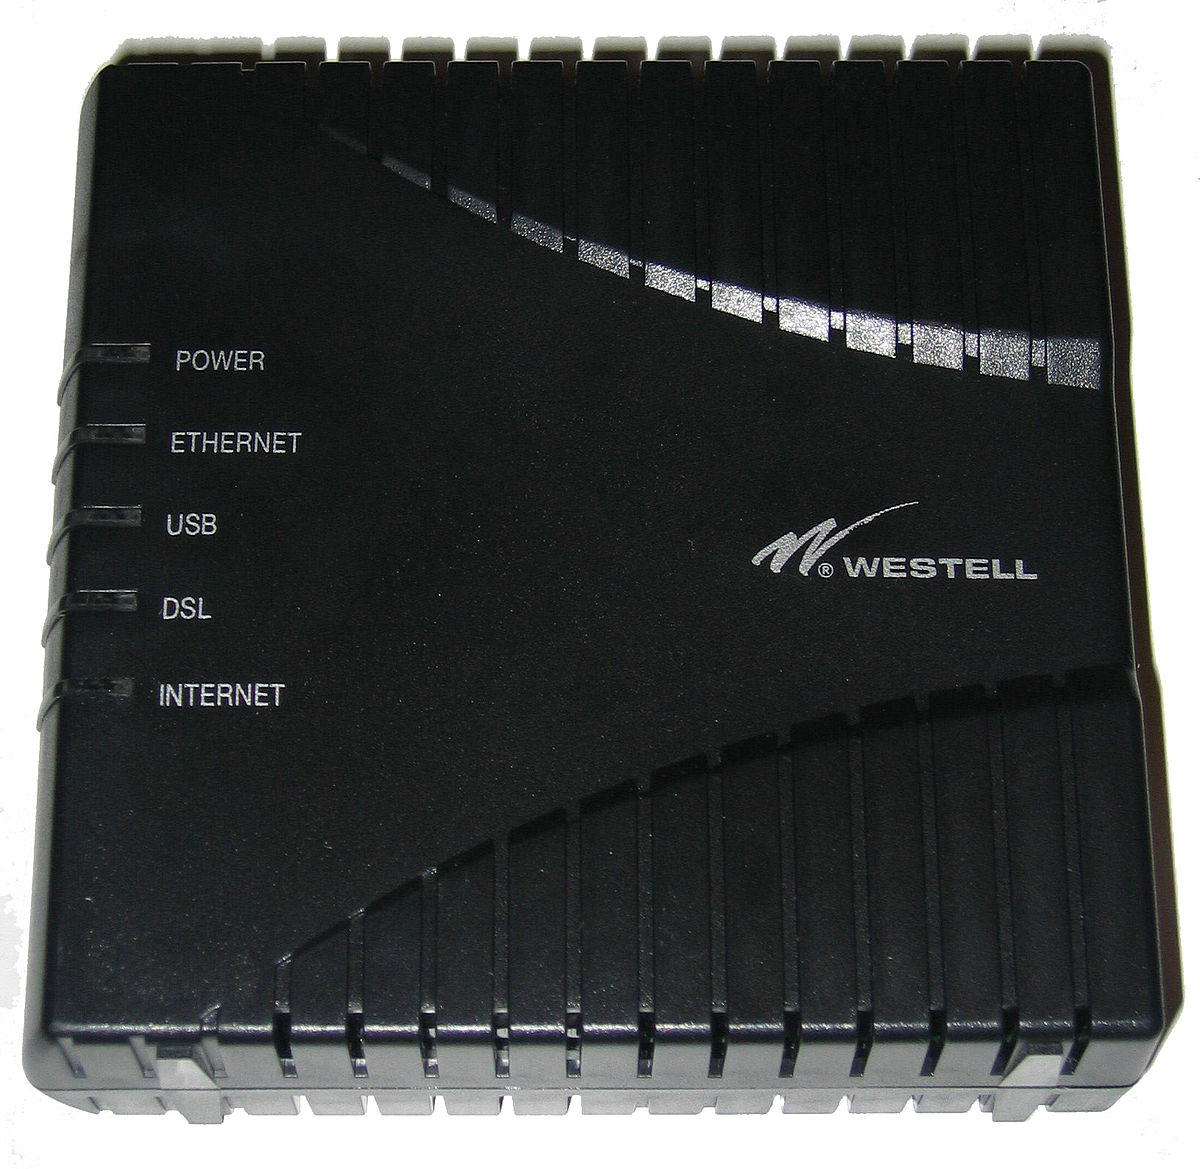 DSL modem - Wikipedia